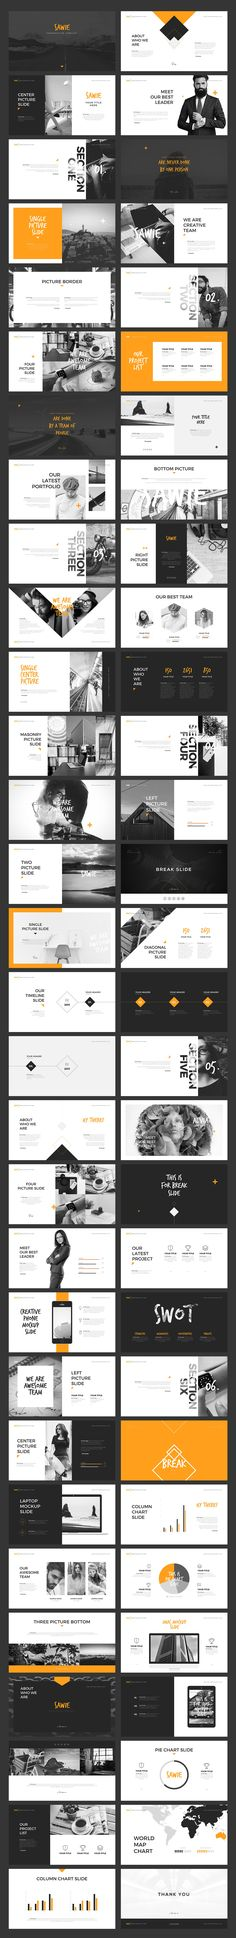 SAWIE PowerPoint Template by Angkalimabelas on @creativemarket